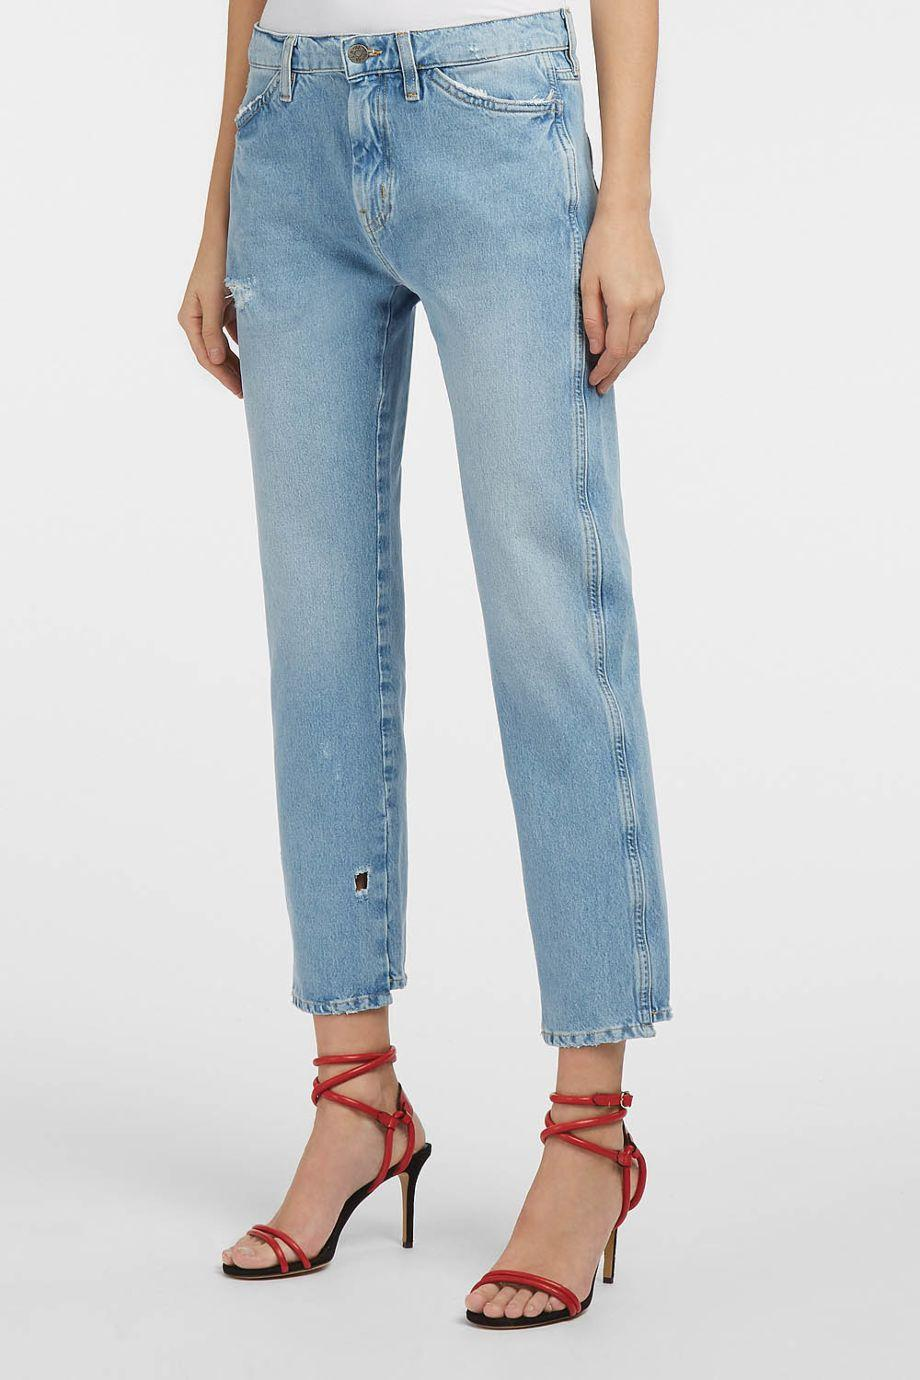 M.i.h Jeans Cult Distressed Straight-Leg Jeans